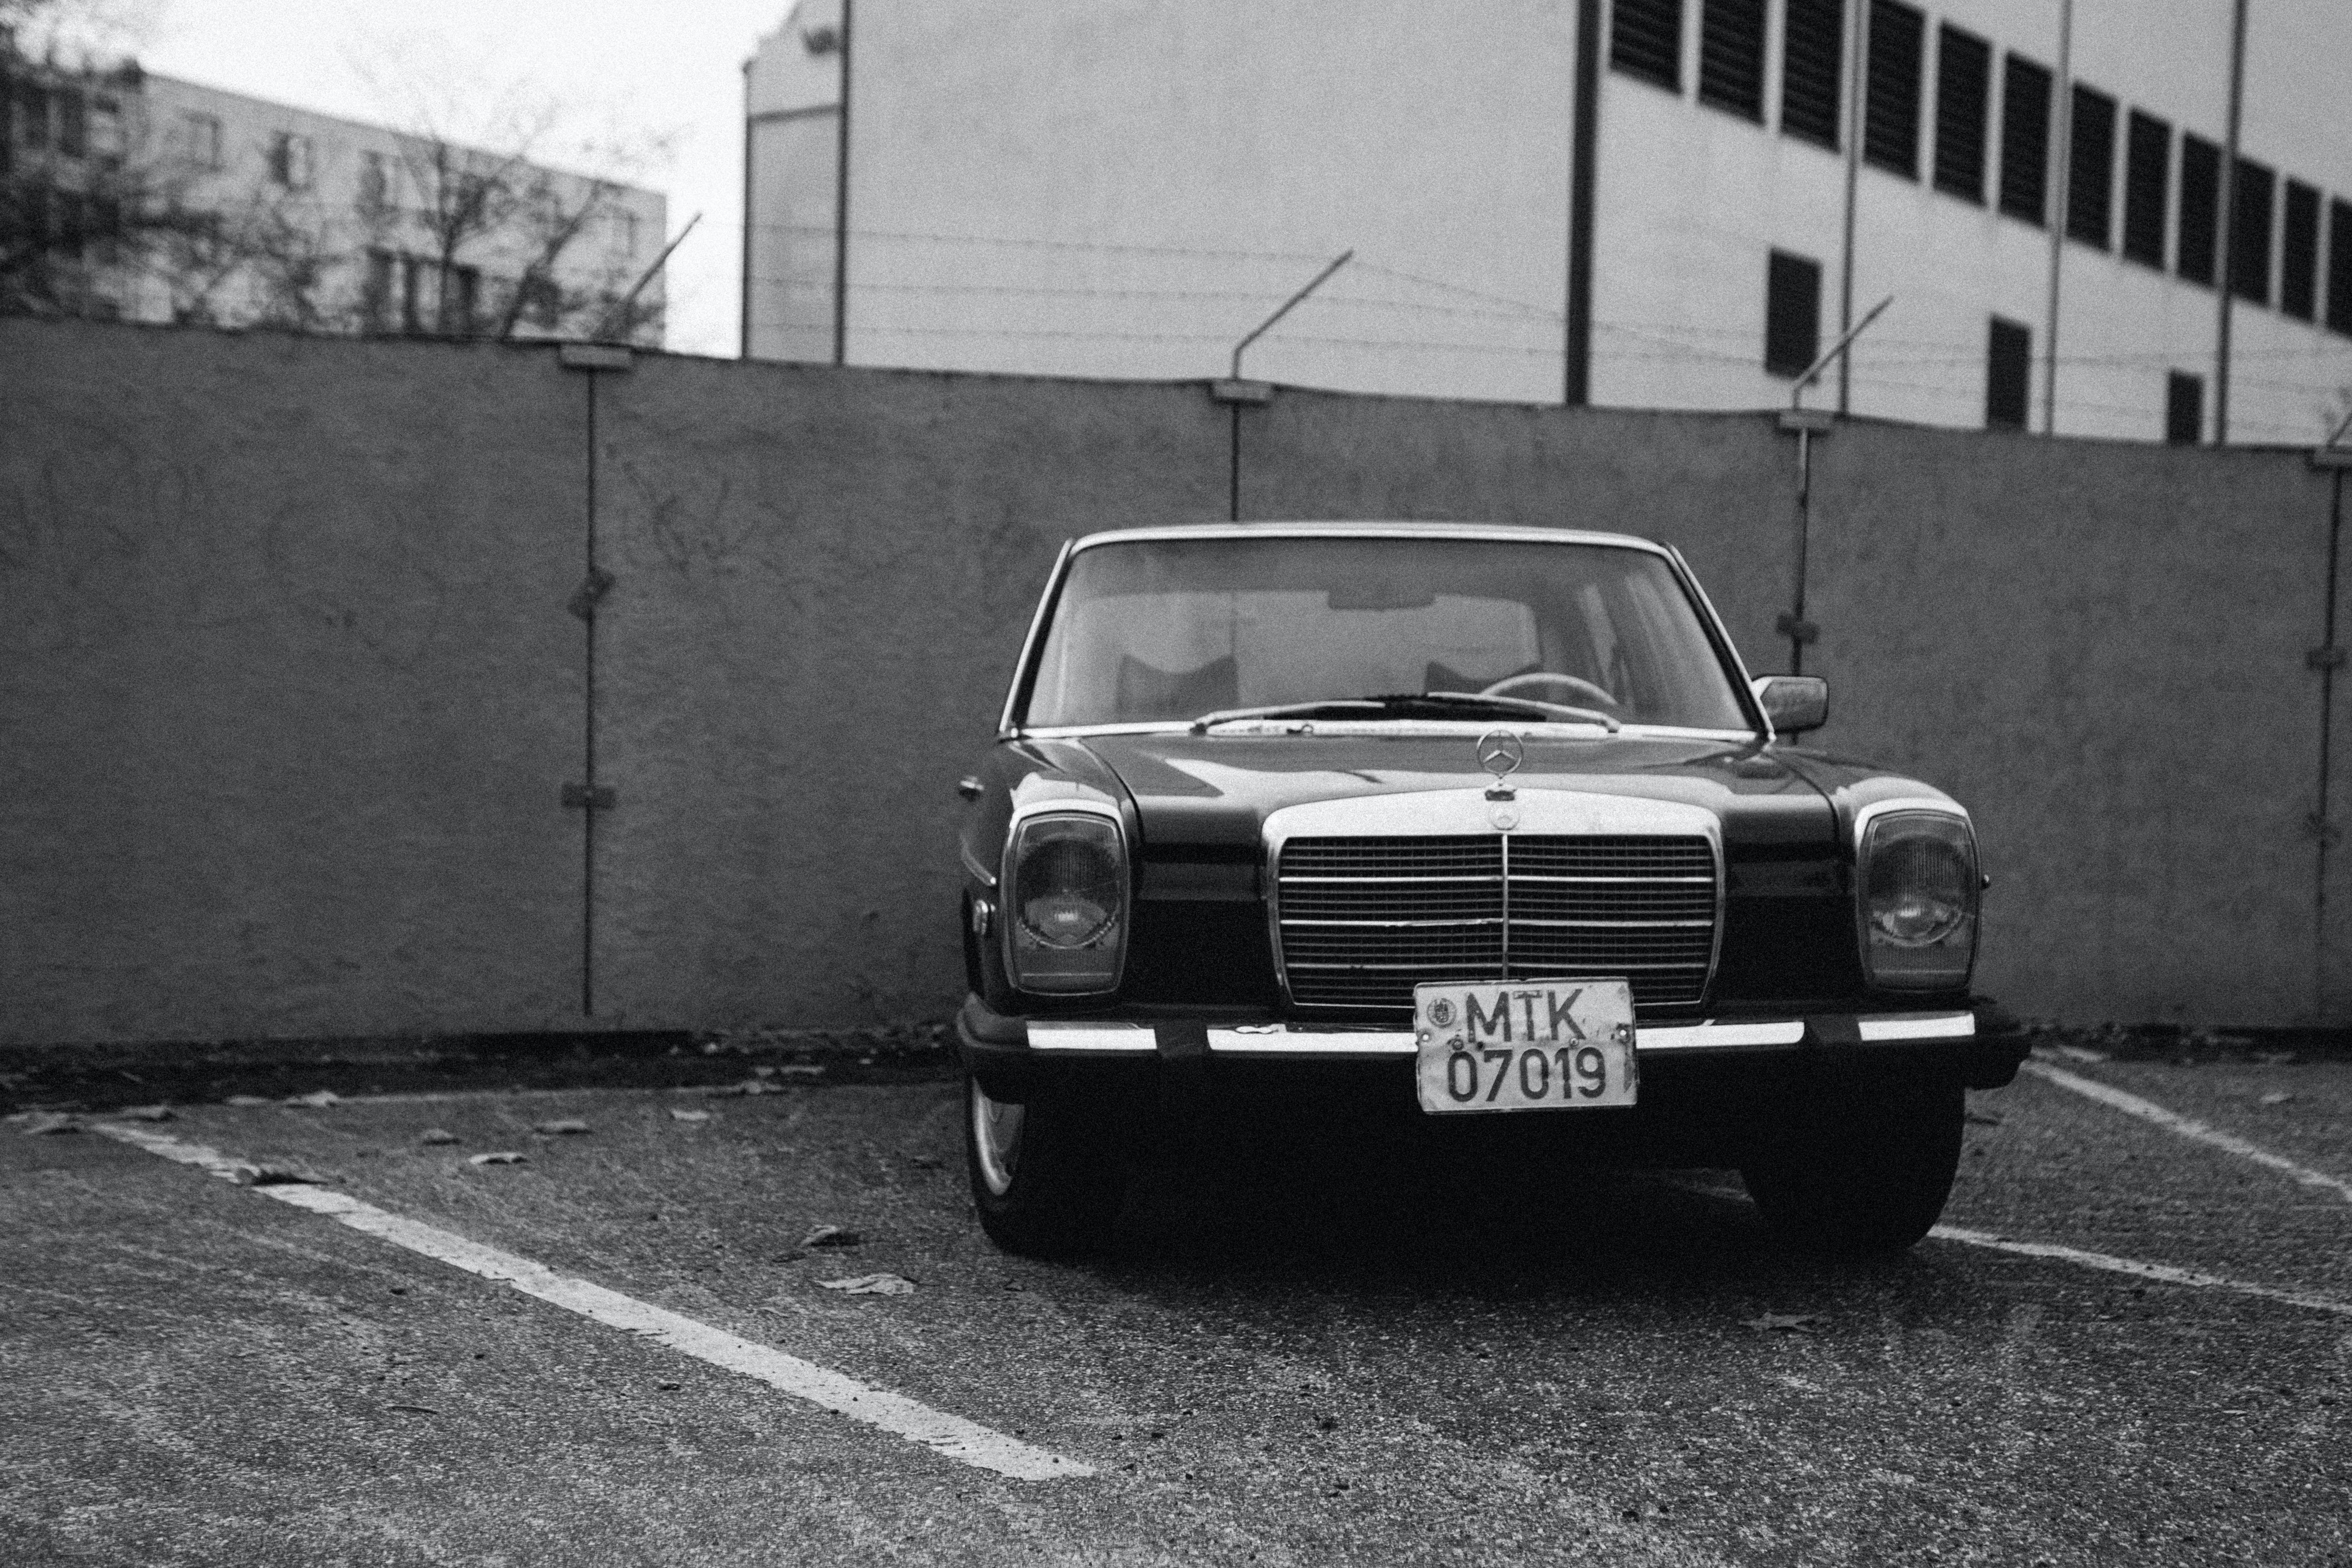 Black Vehicle Parked Near Concrete Wall in Grayscale Photography